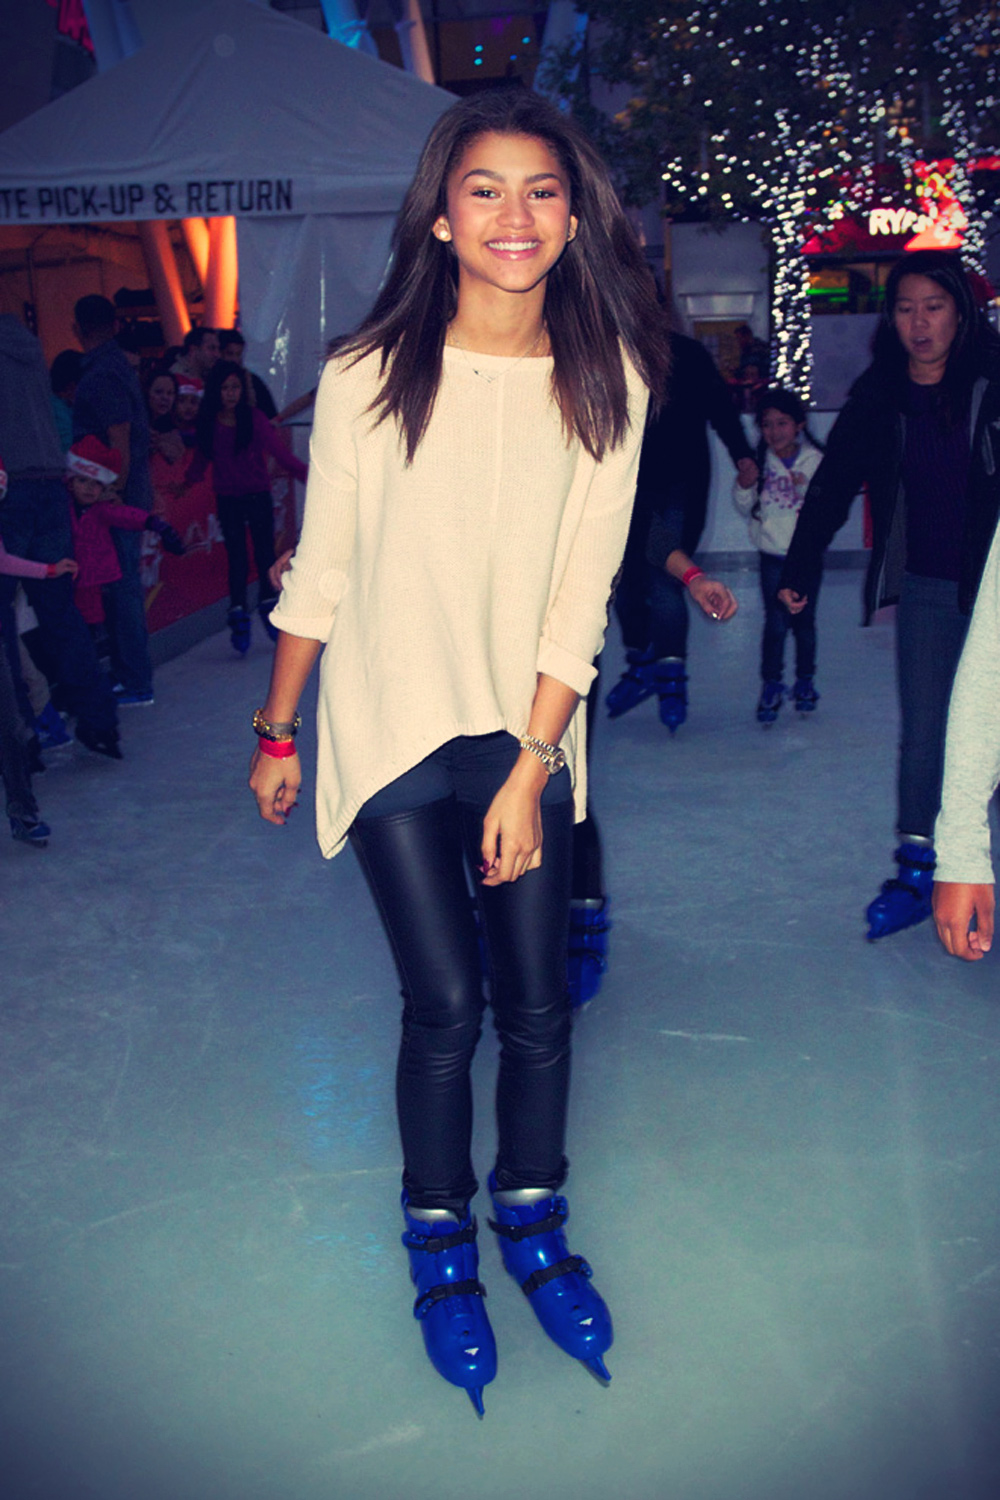 Zendaya is seen ice skating